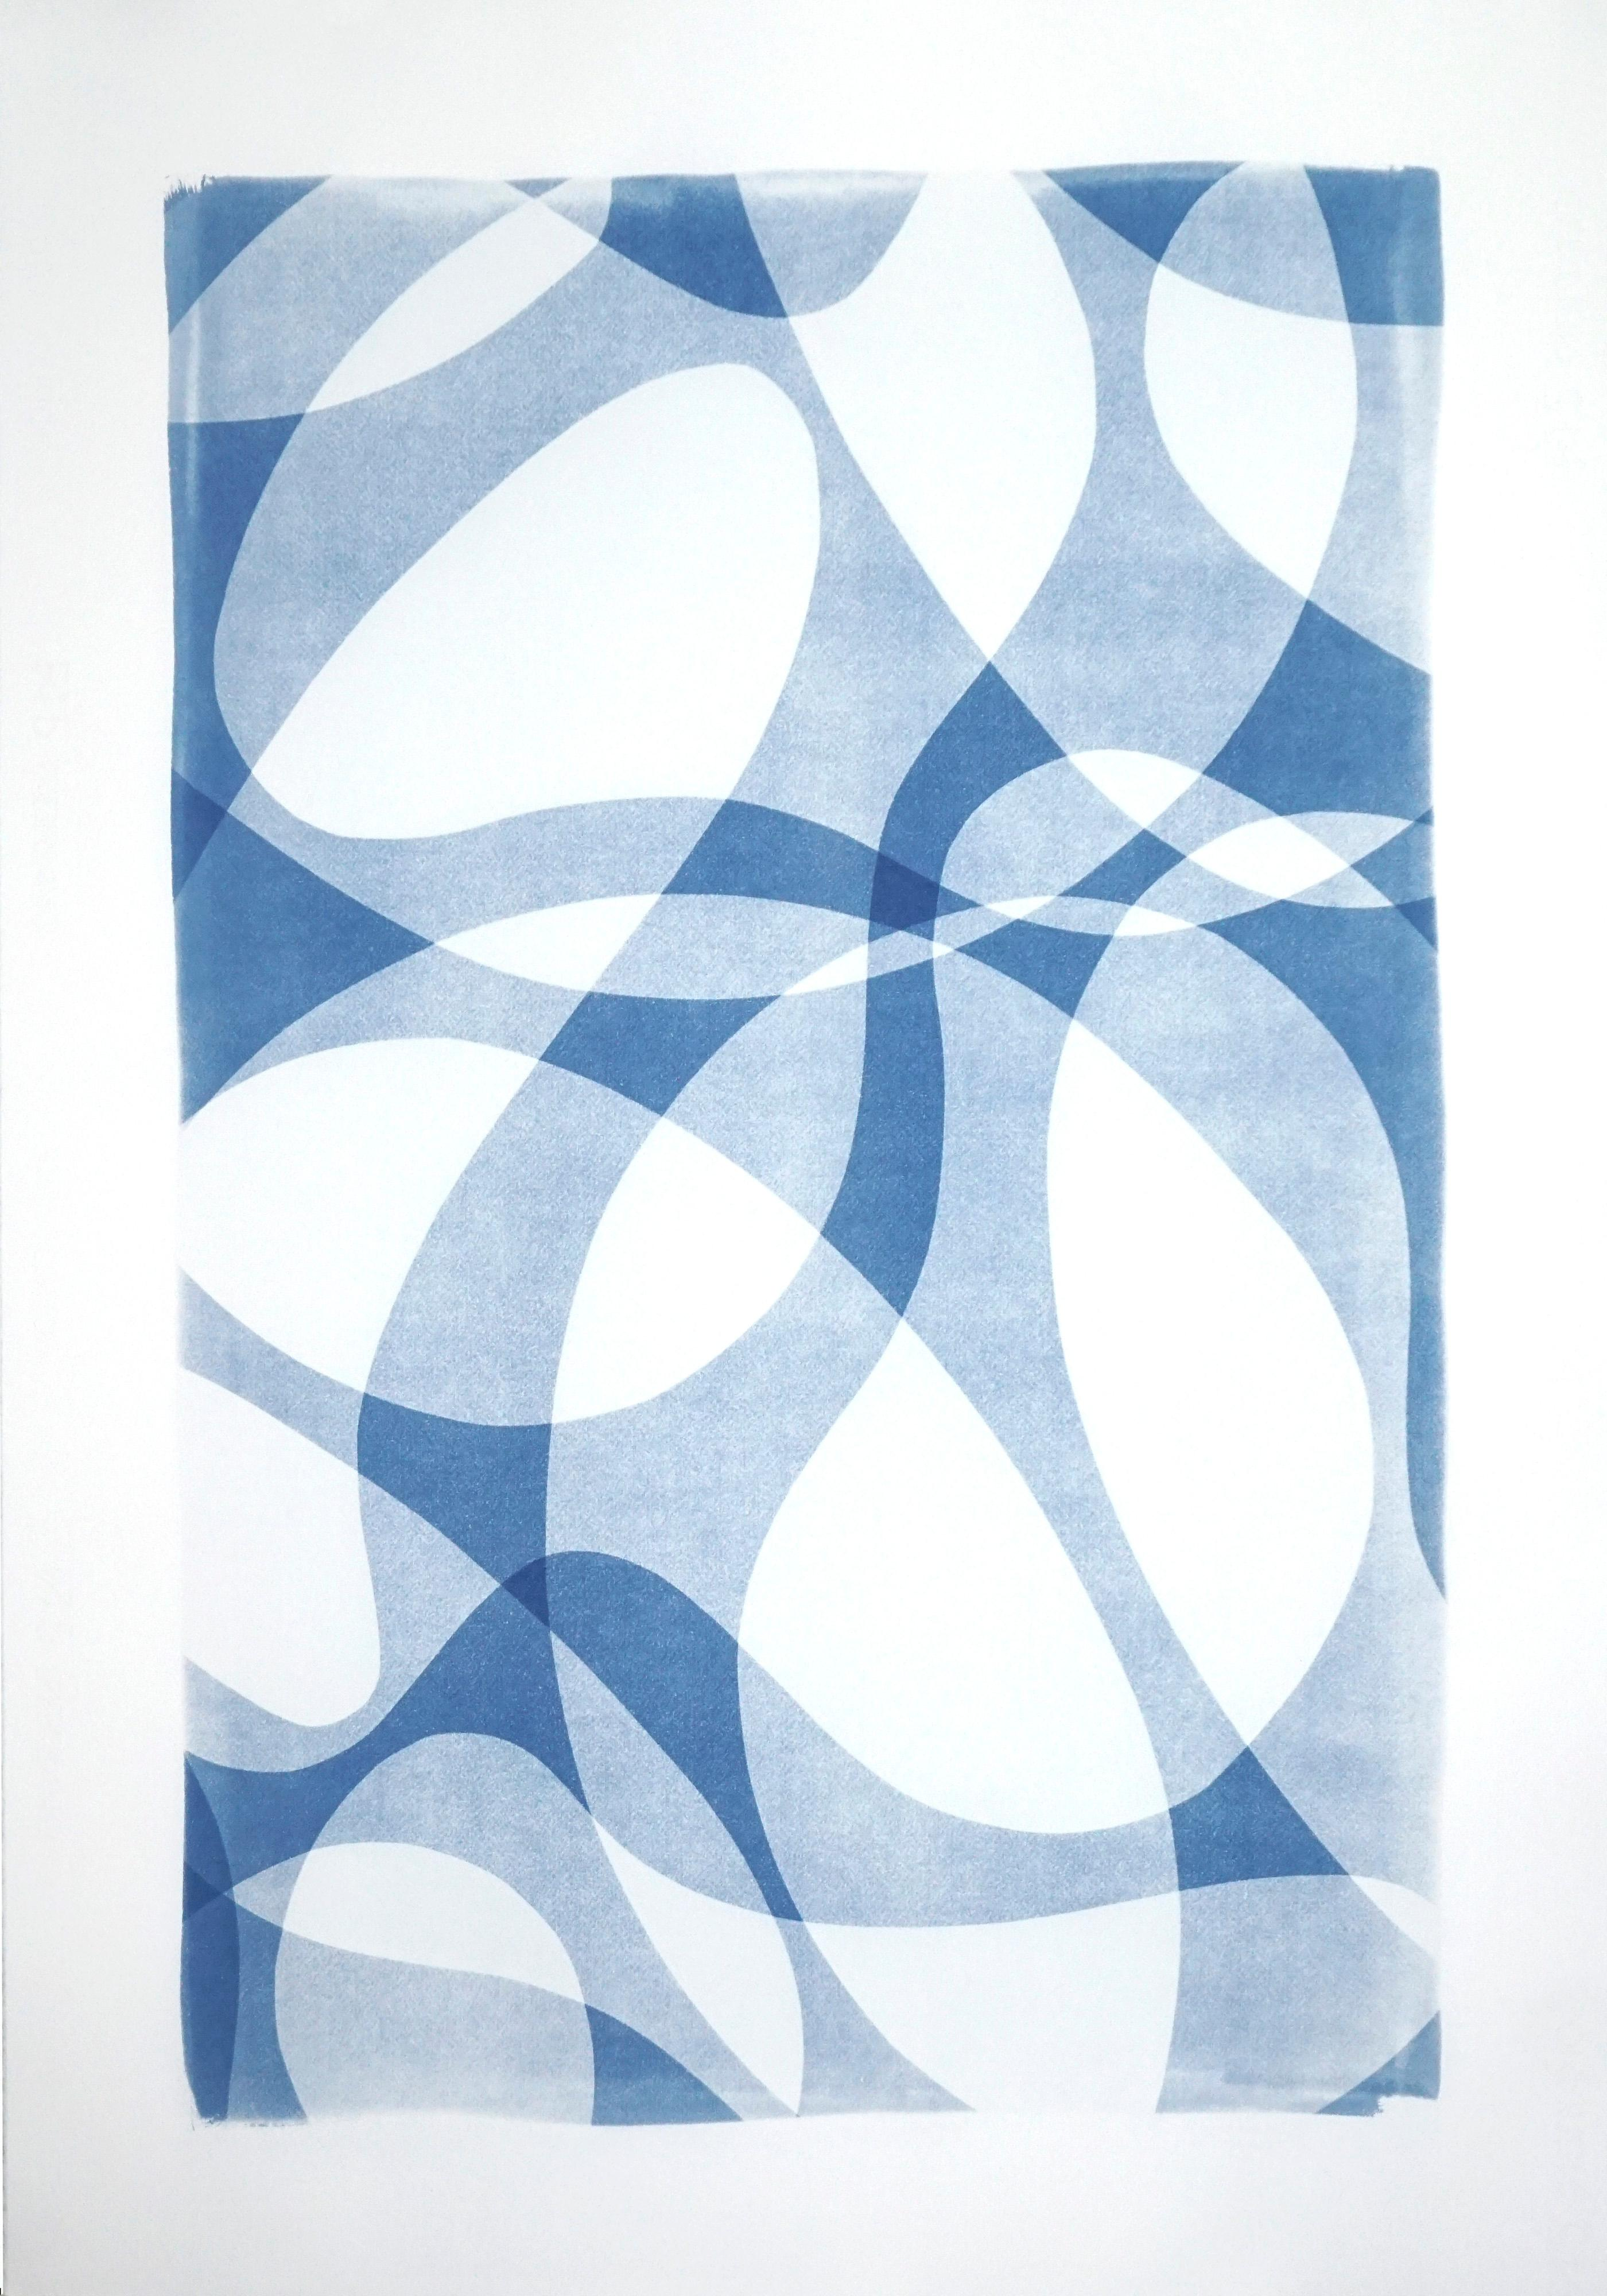 Extra Large Monotype of Contours and Shades in Blue Tones, Watercolor Paper